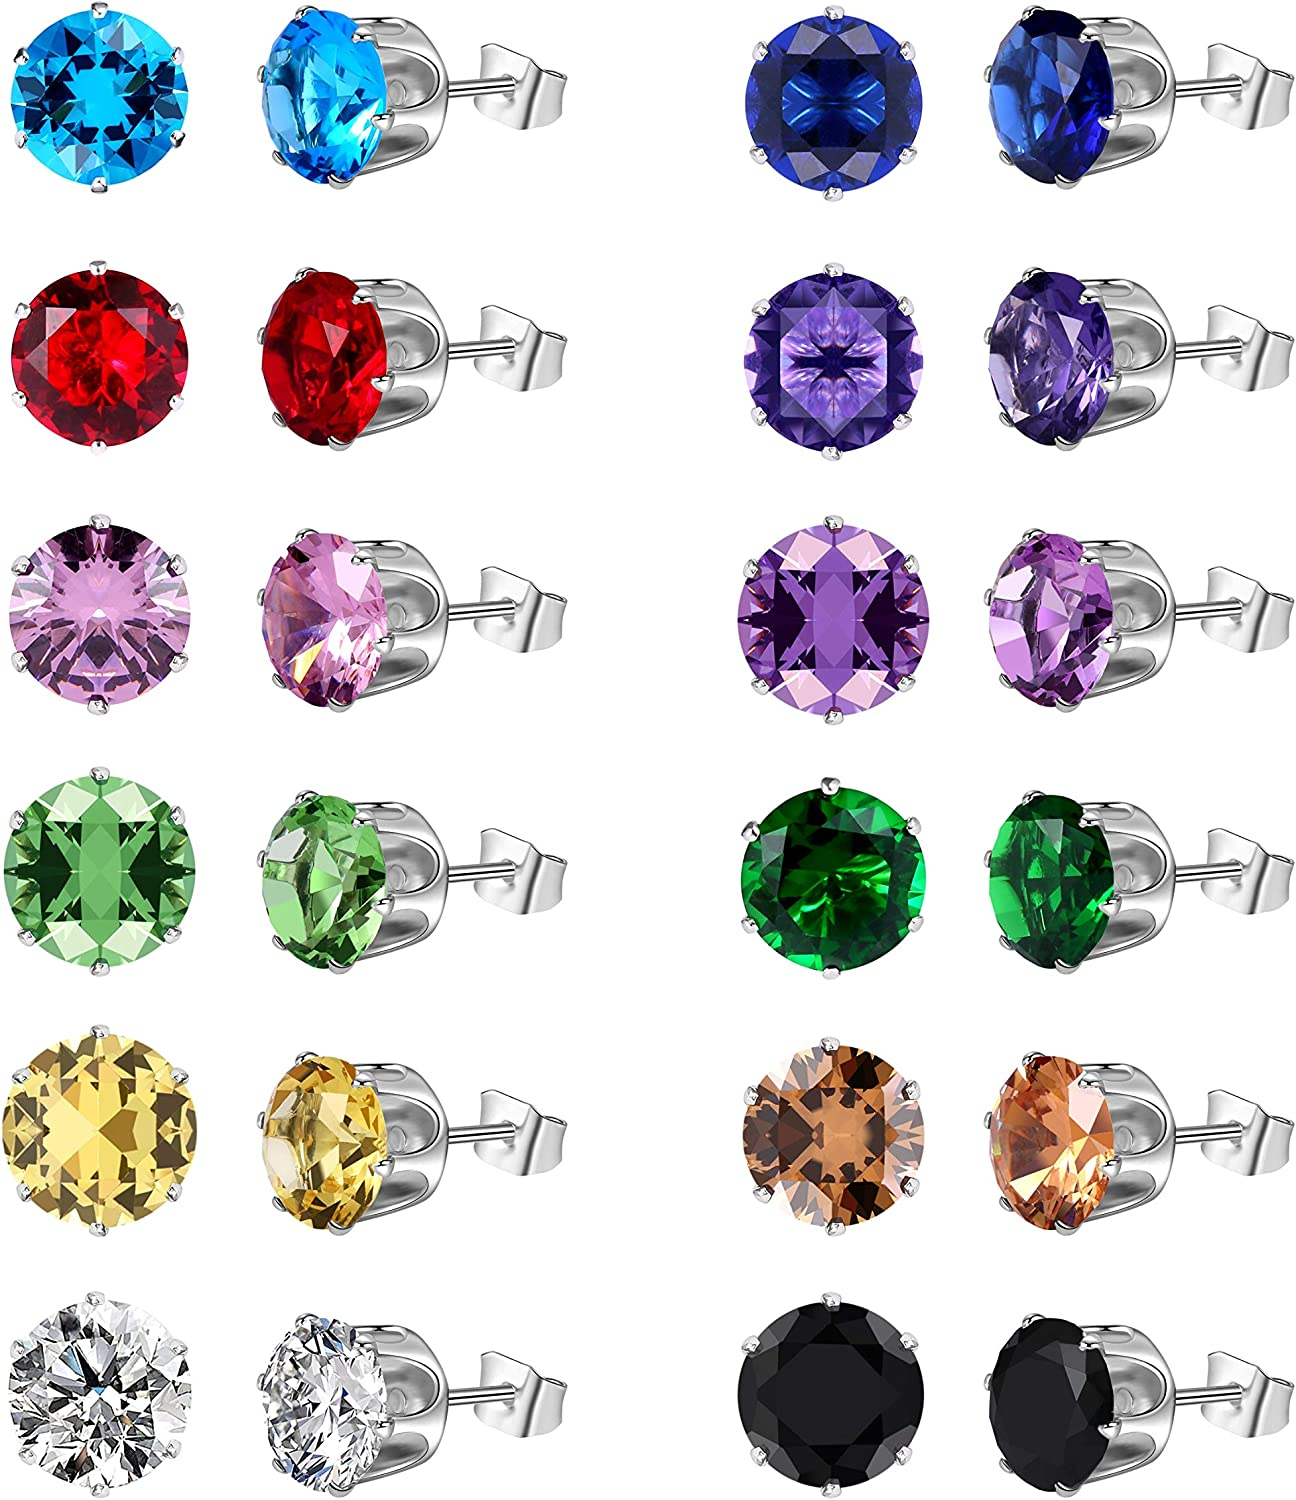 pair Stainless Steel Gold Color Plated Prong-Set Round Circle Stud Earrings with Topaz CZ